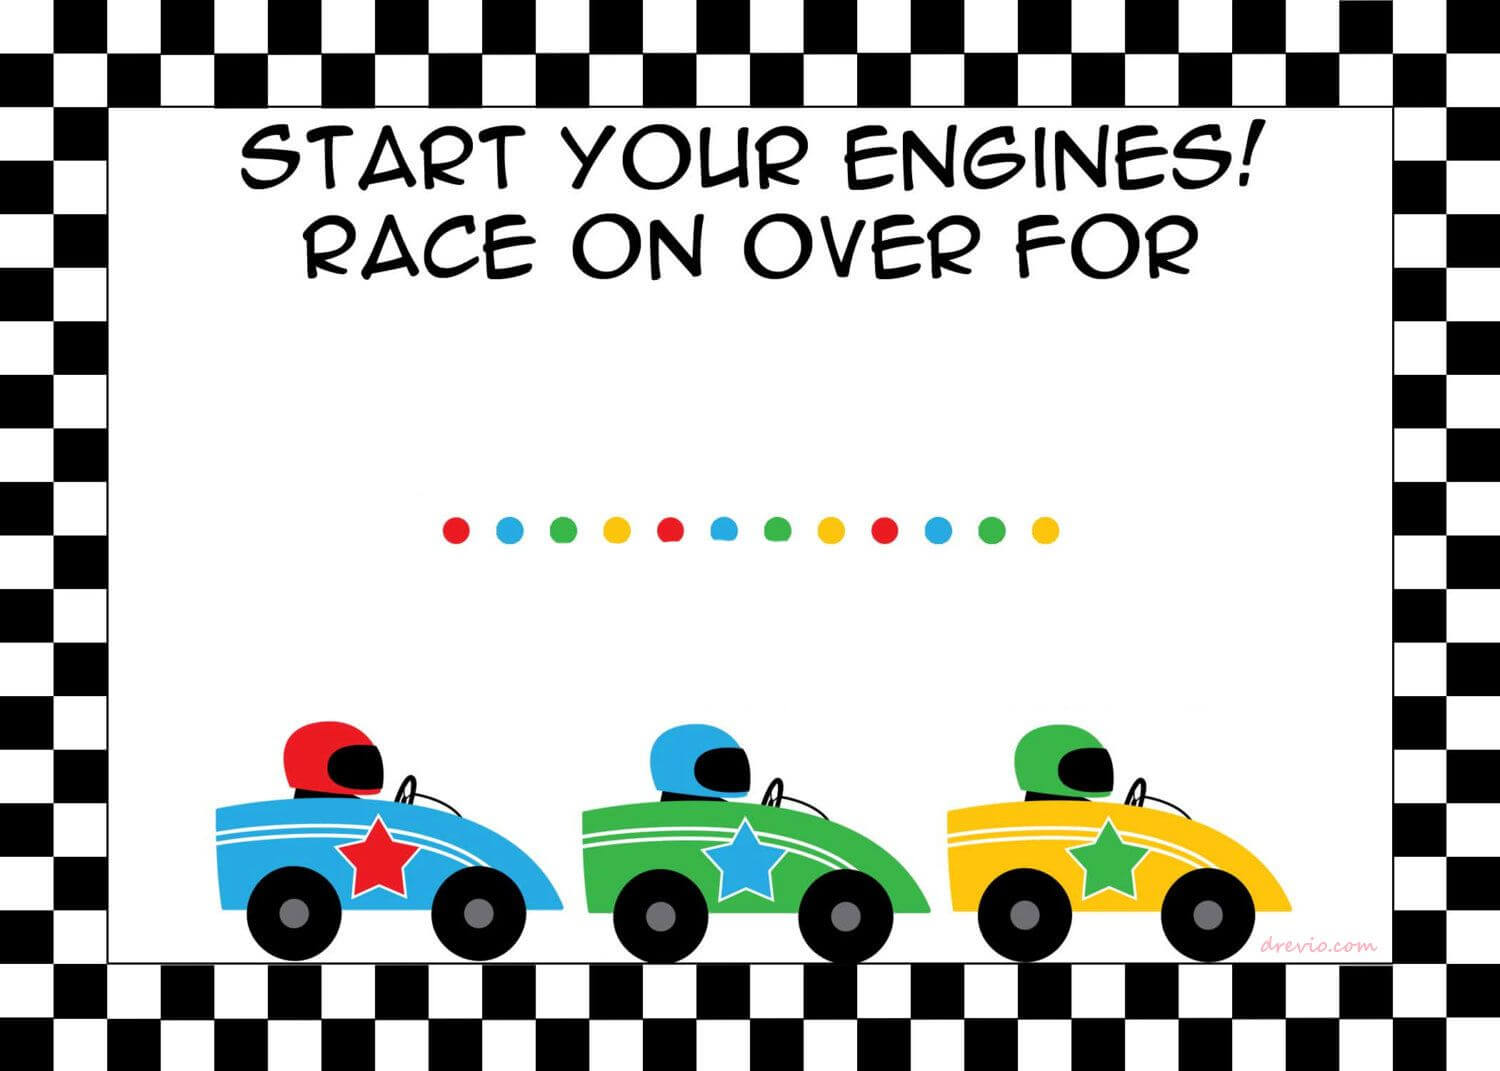 Free Printable Race Car Birthday Party Invitations - Updated regarding Cars Birthday Banner Template